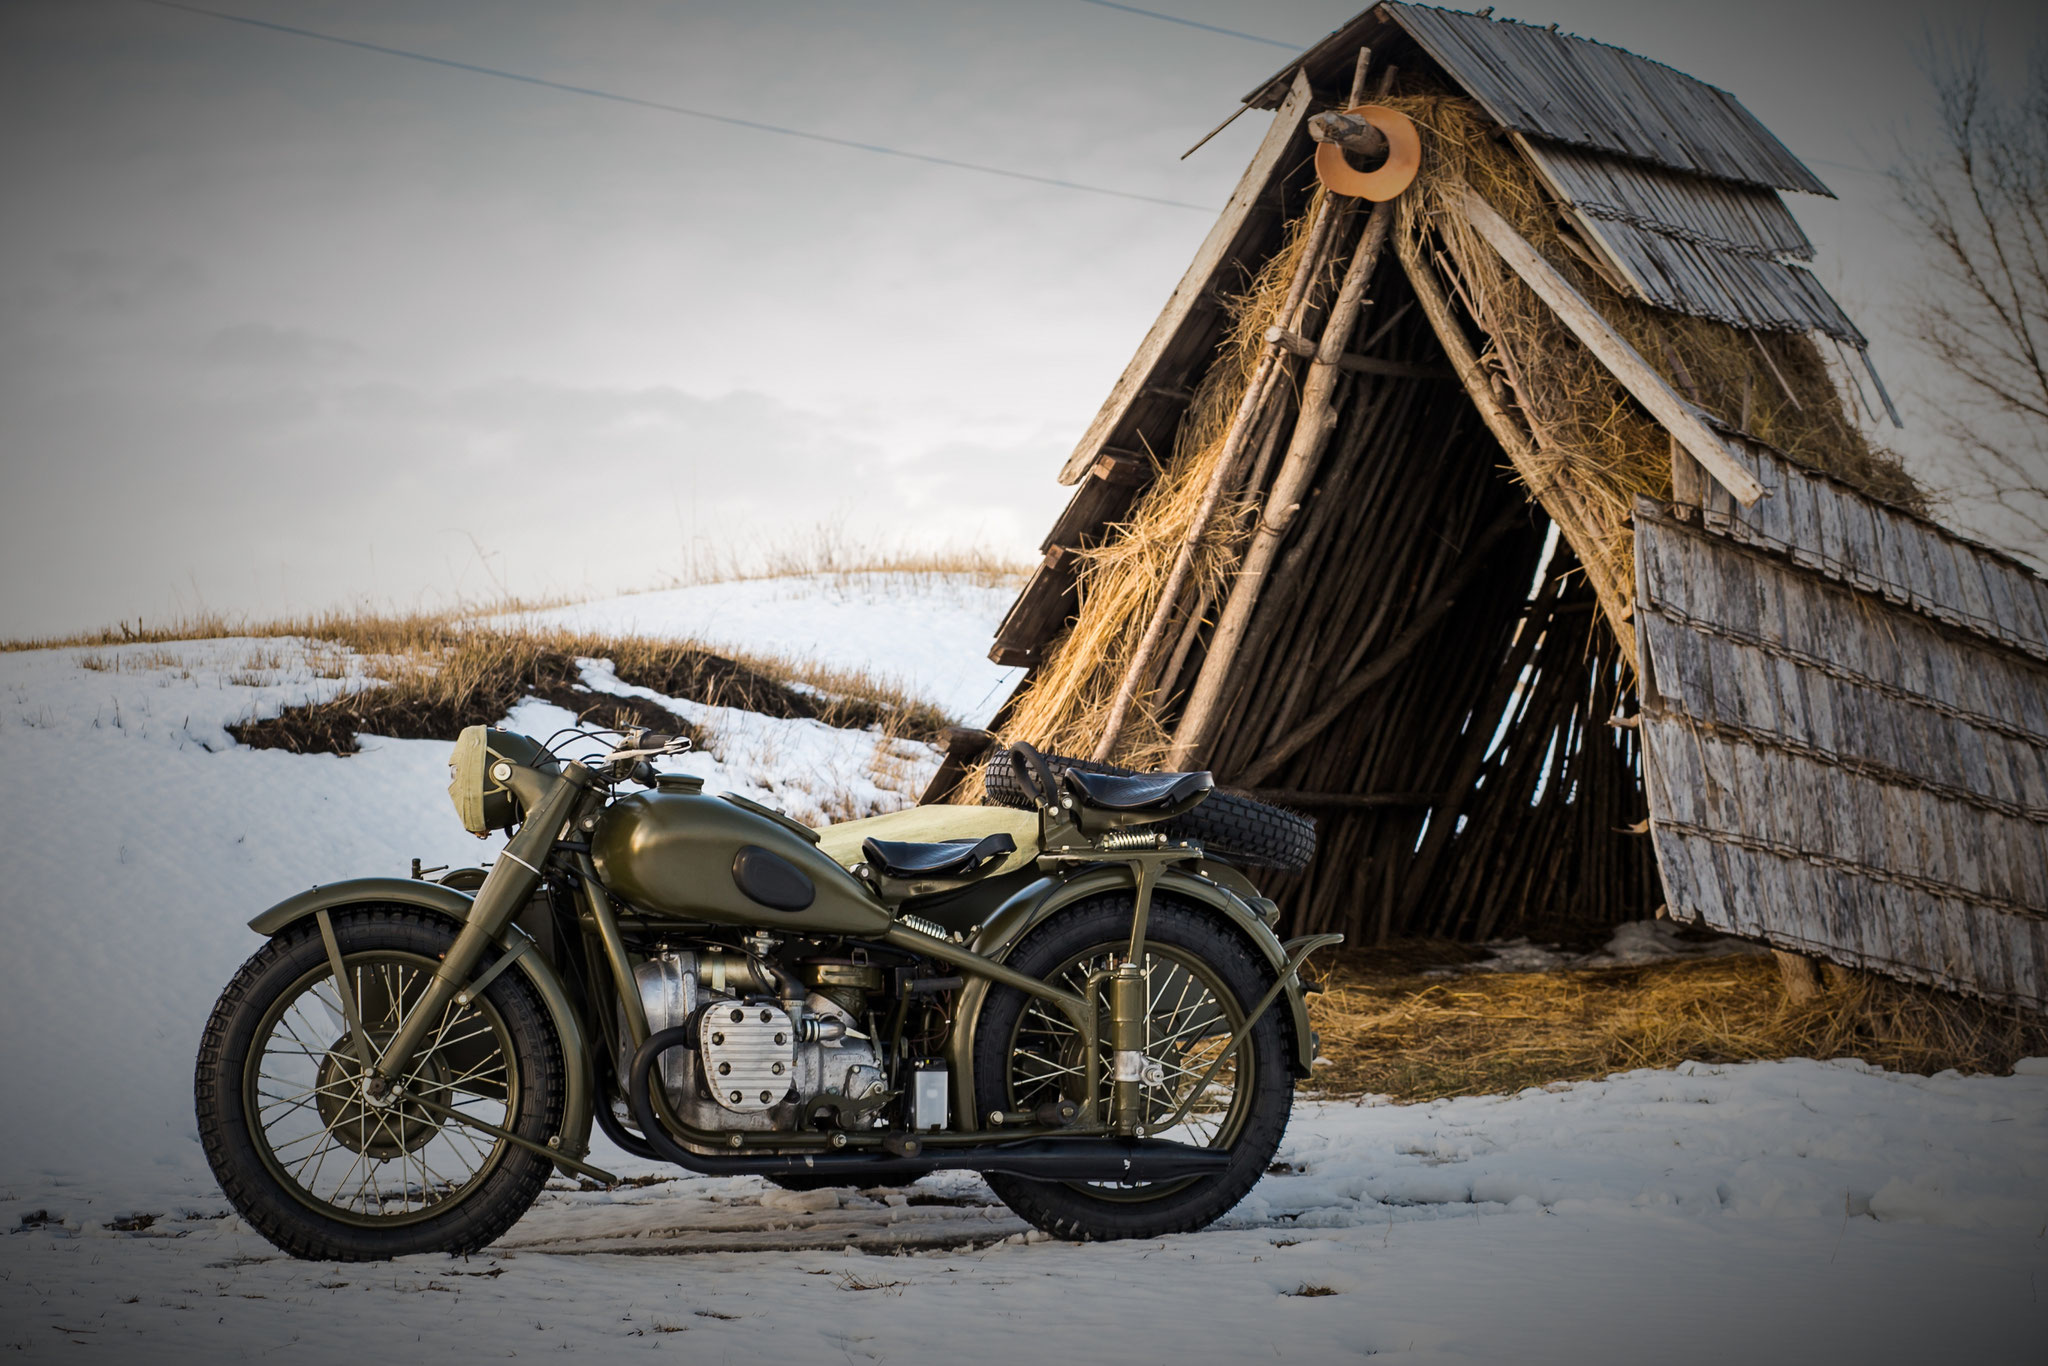 Army in the City (Ural M-72 - 1950) - from 7.500,00 euro